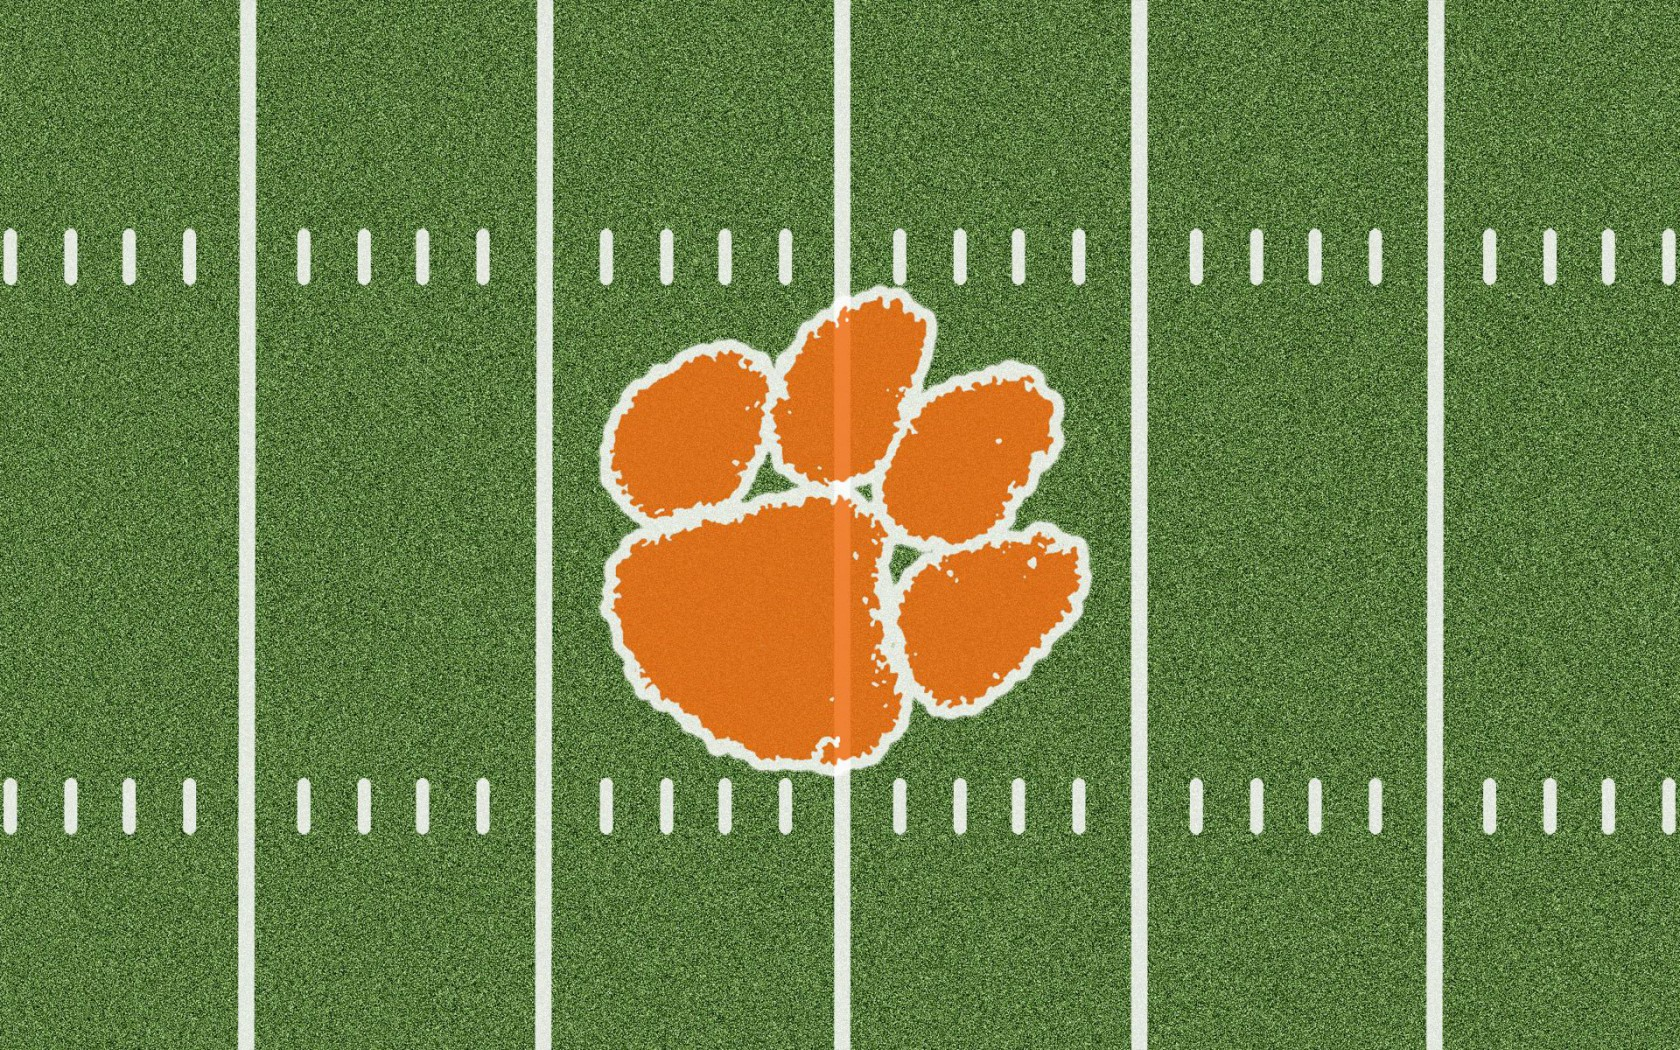 Football Field Clemson Logo On 958261 With Resolutions 16801050 1680x1050